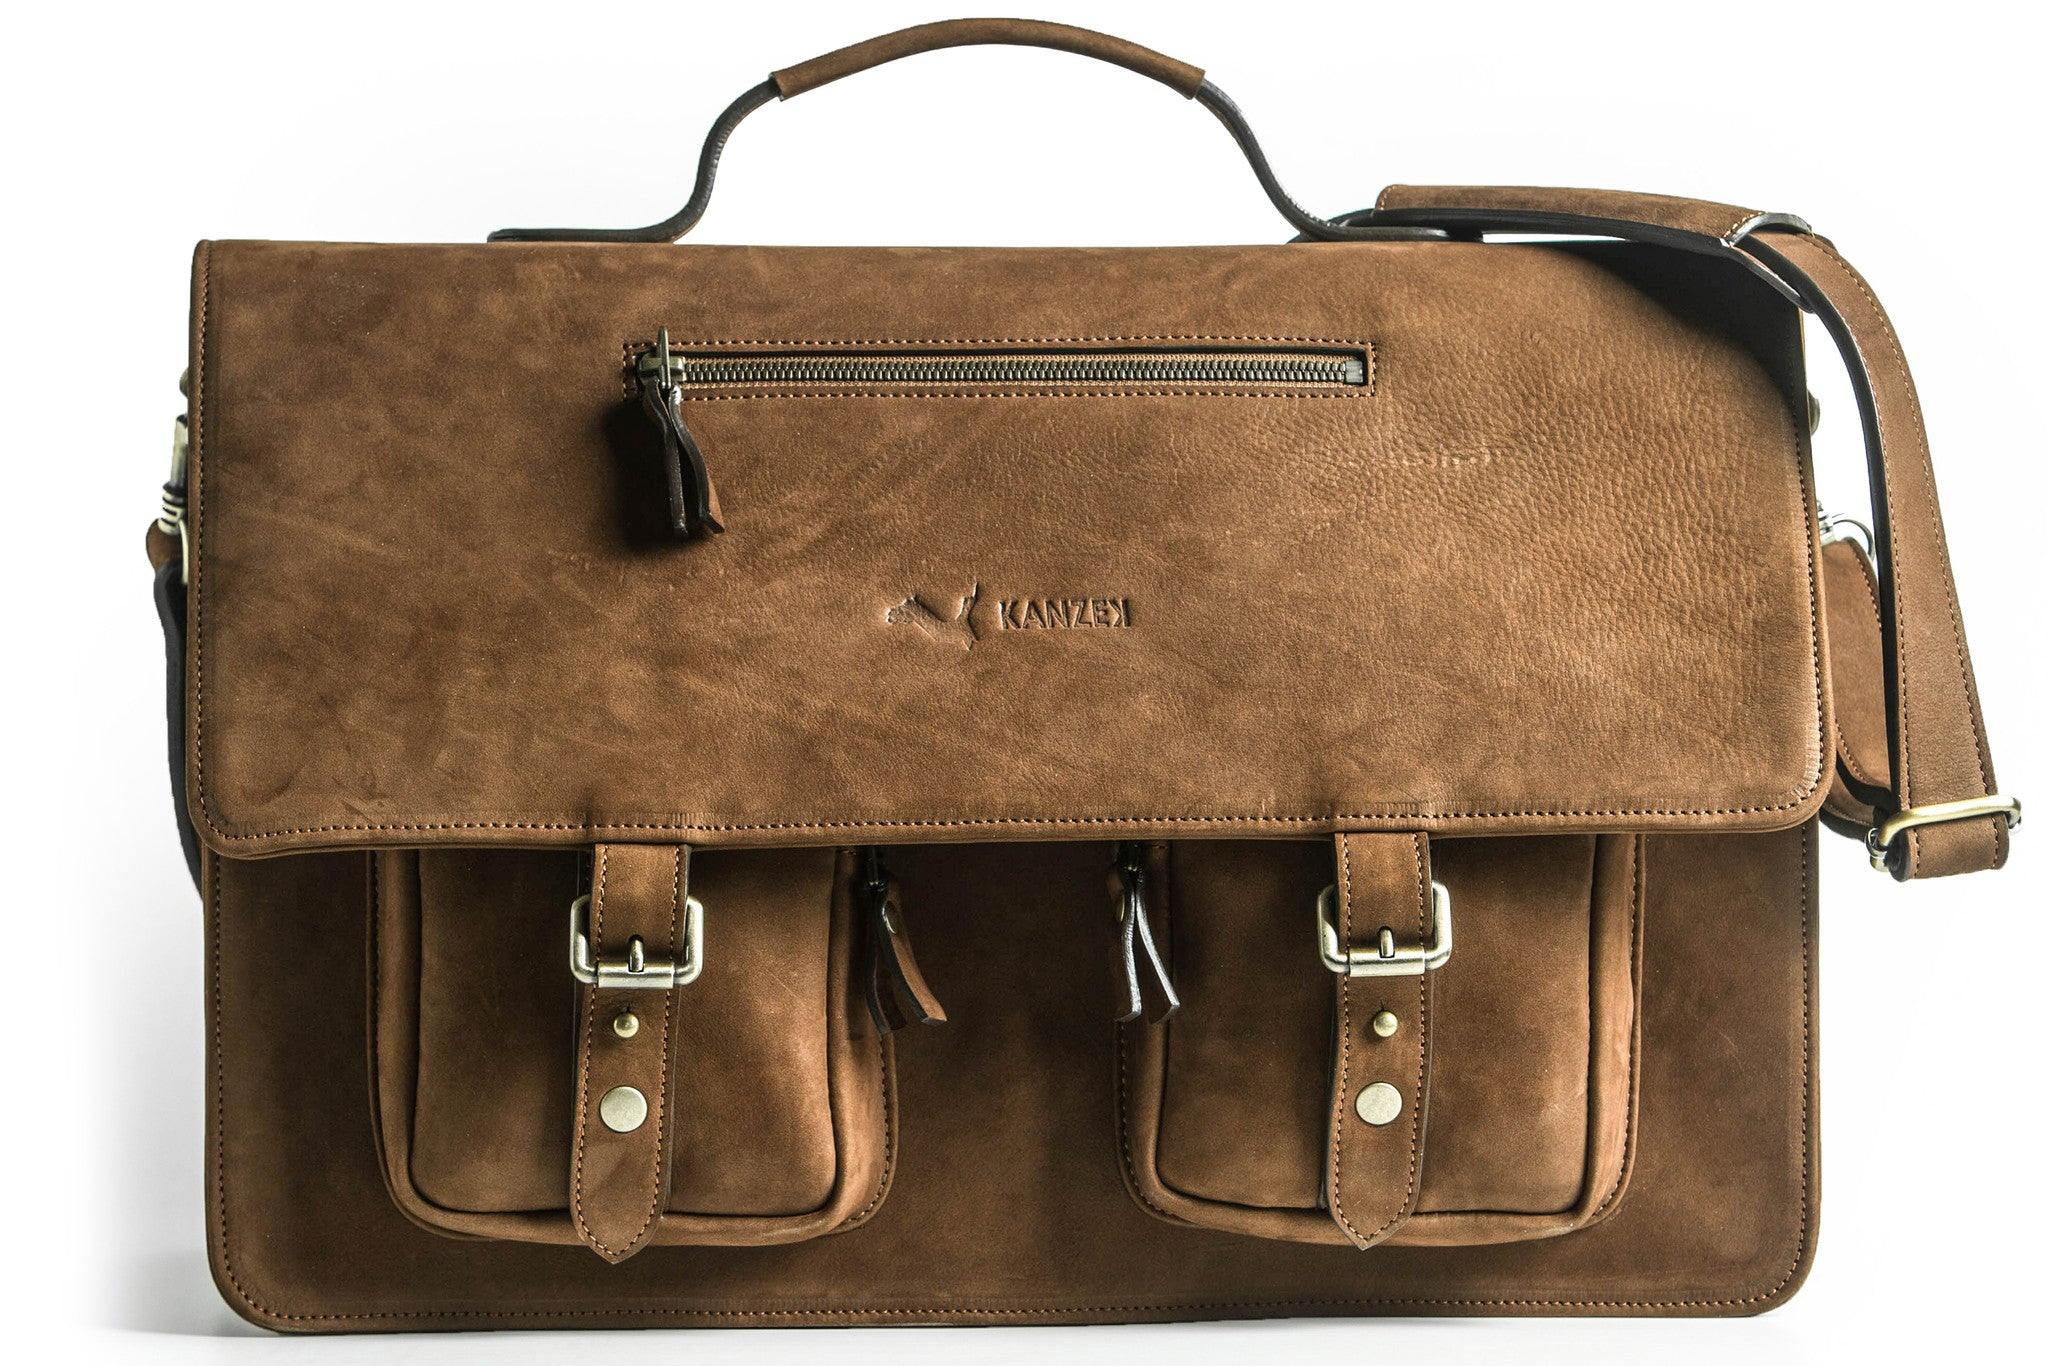 A front view of KANZEK's laptop leather satchel or messenger bag for men in vintage brown with full grain calf leather